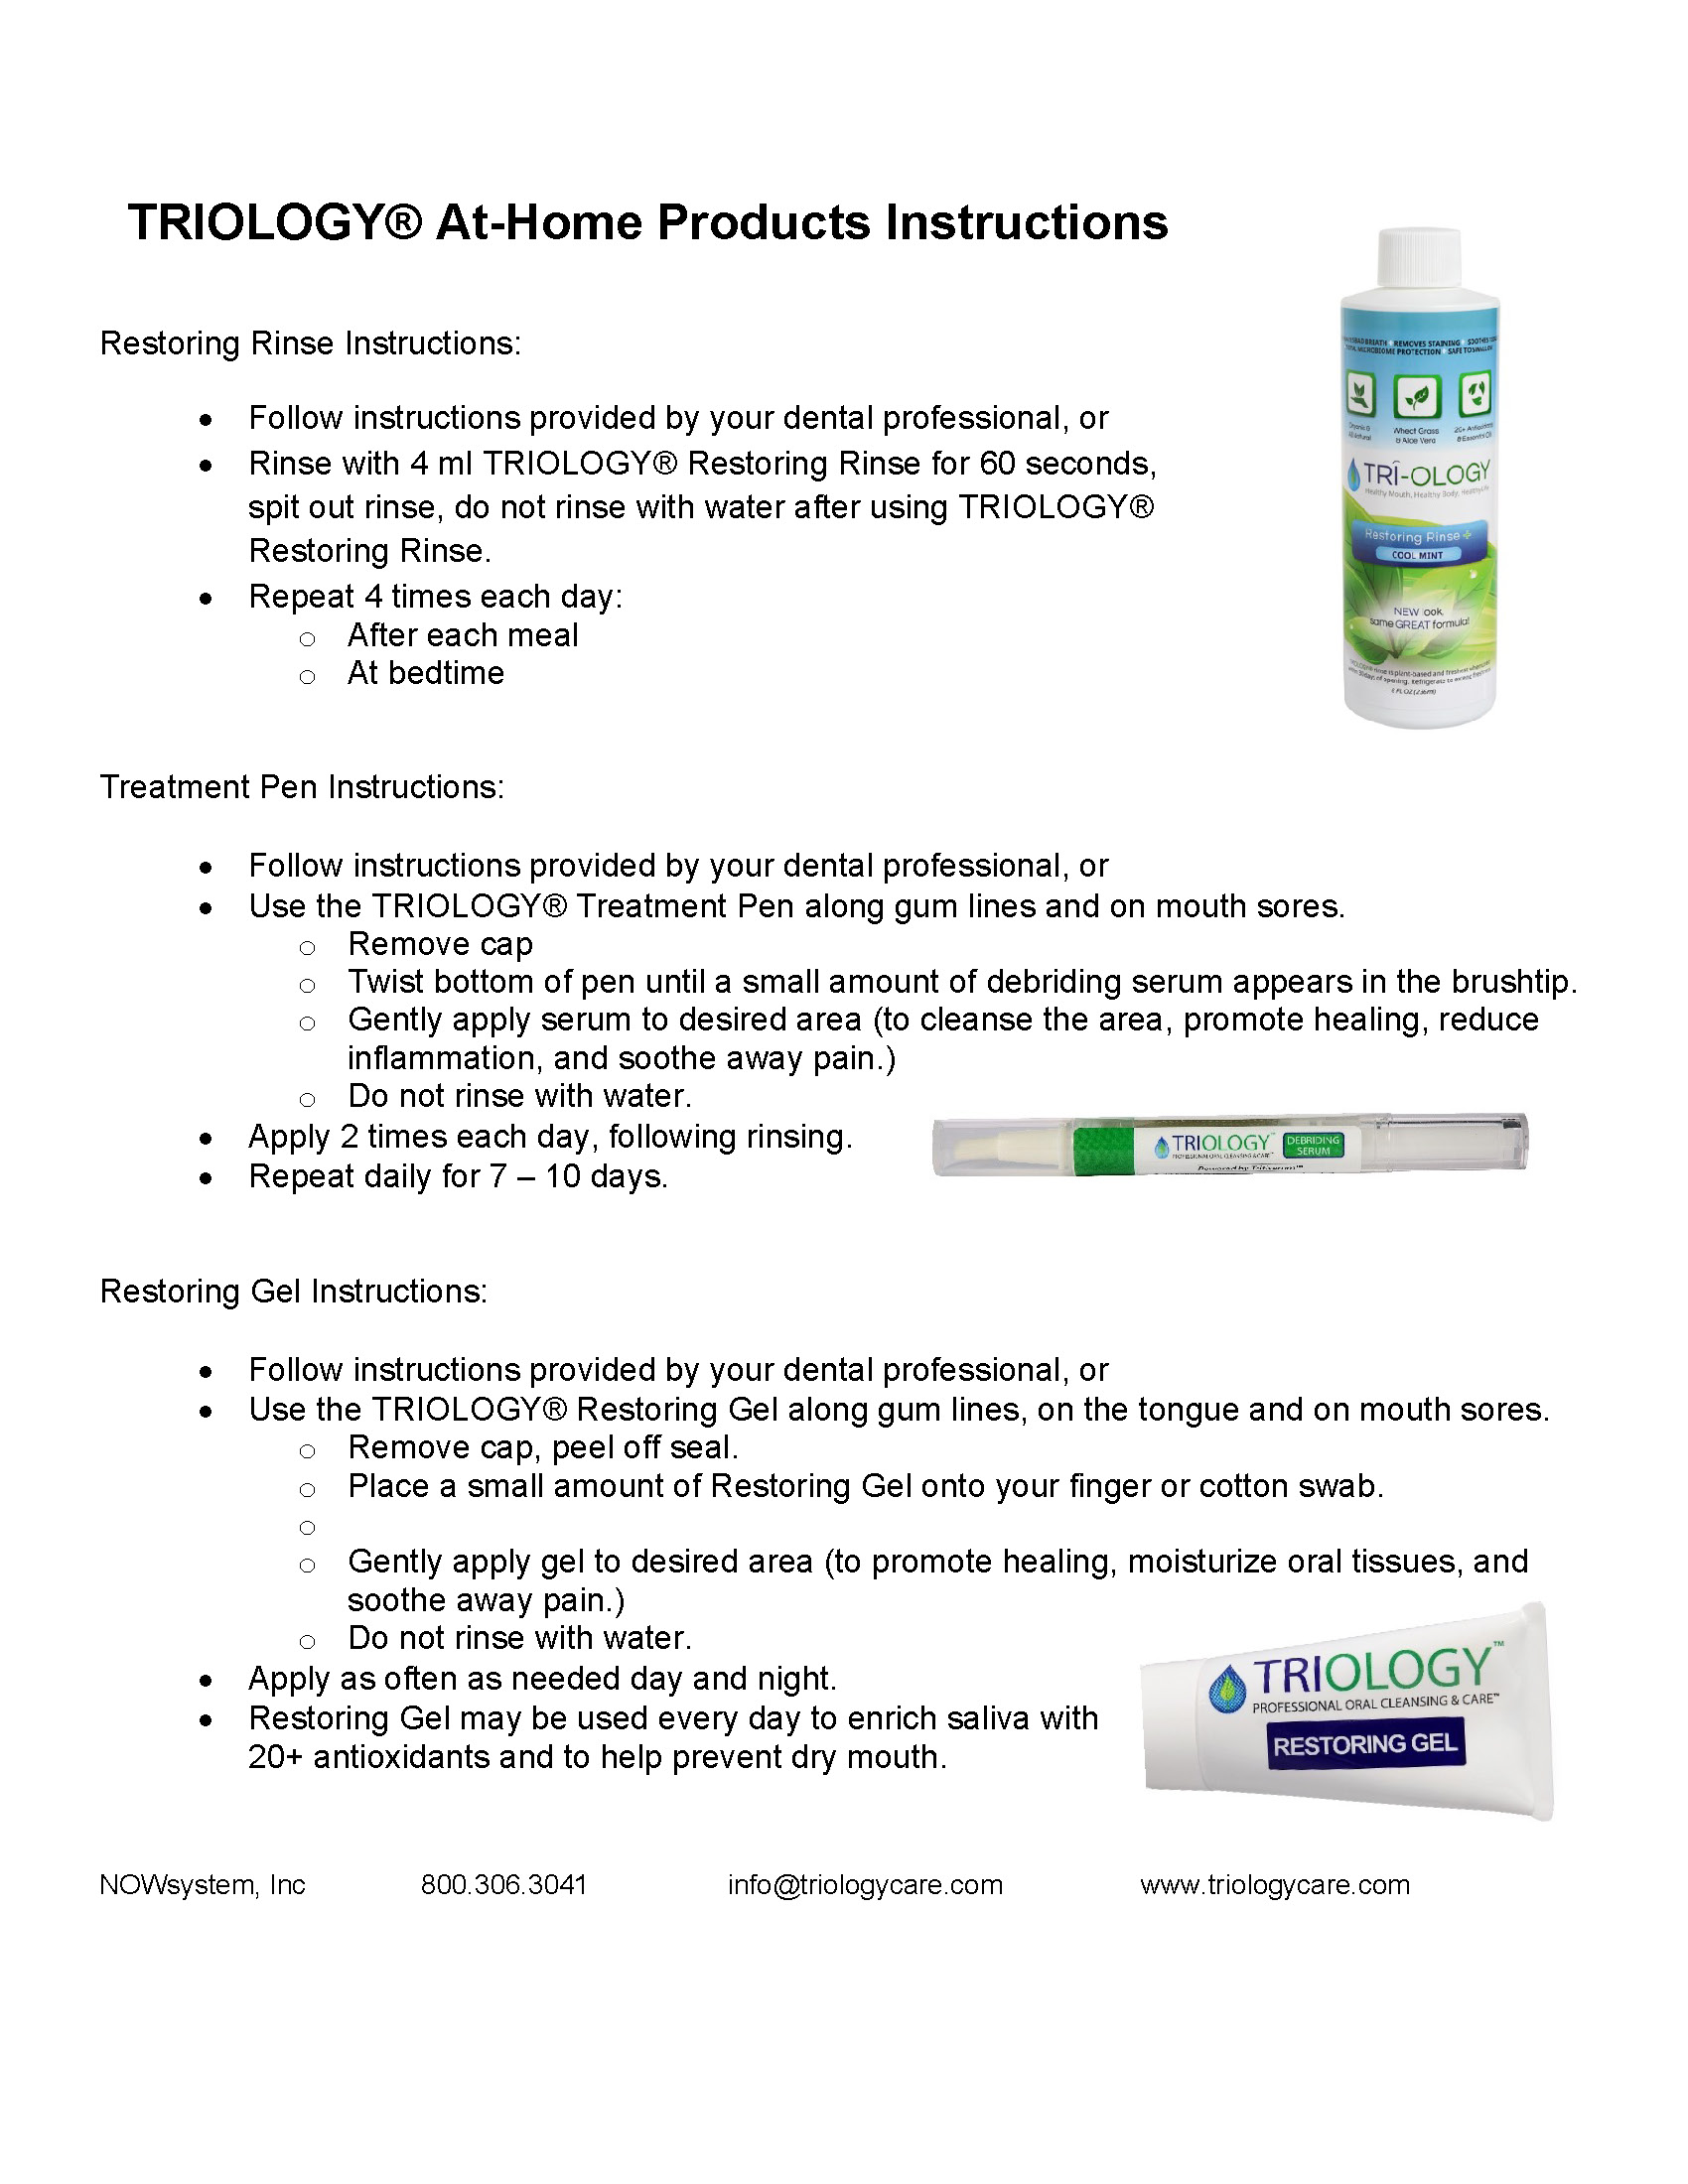 triology-products-at-home-instructions-2021.jpg